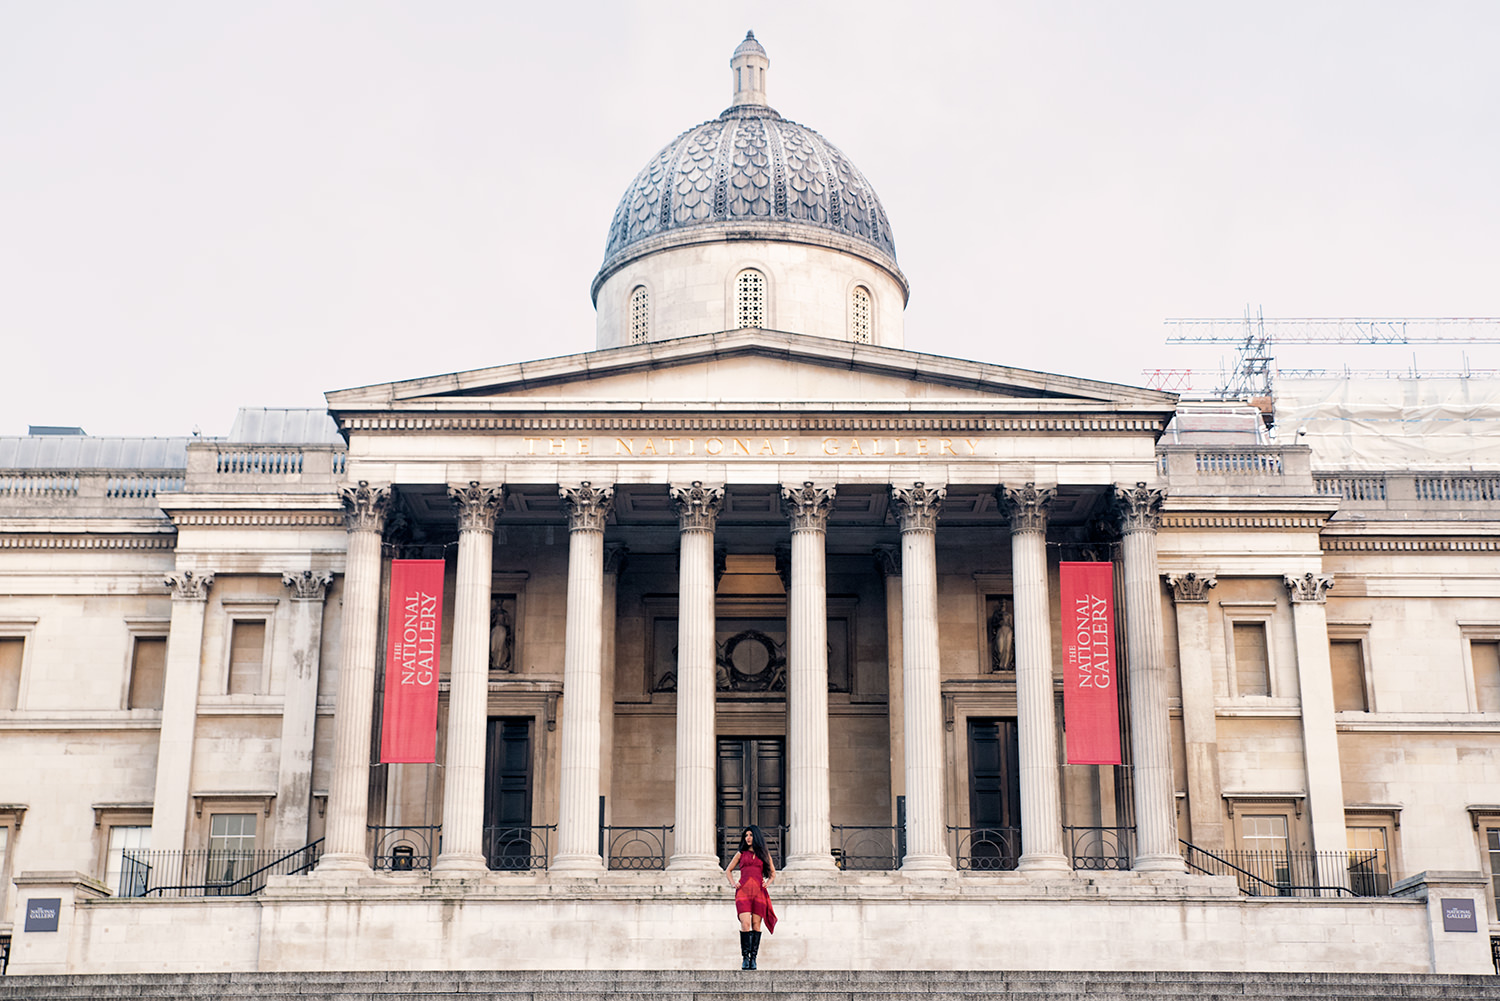 Central London photoshoot